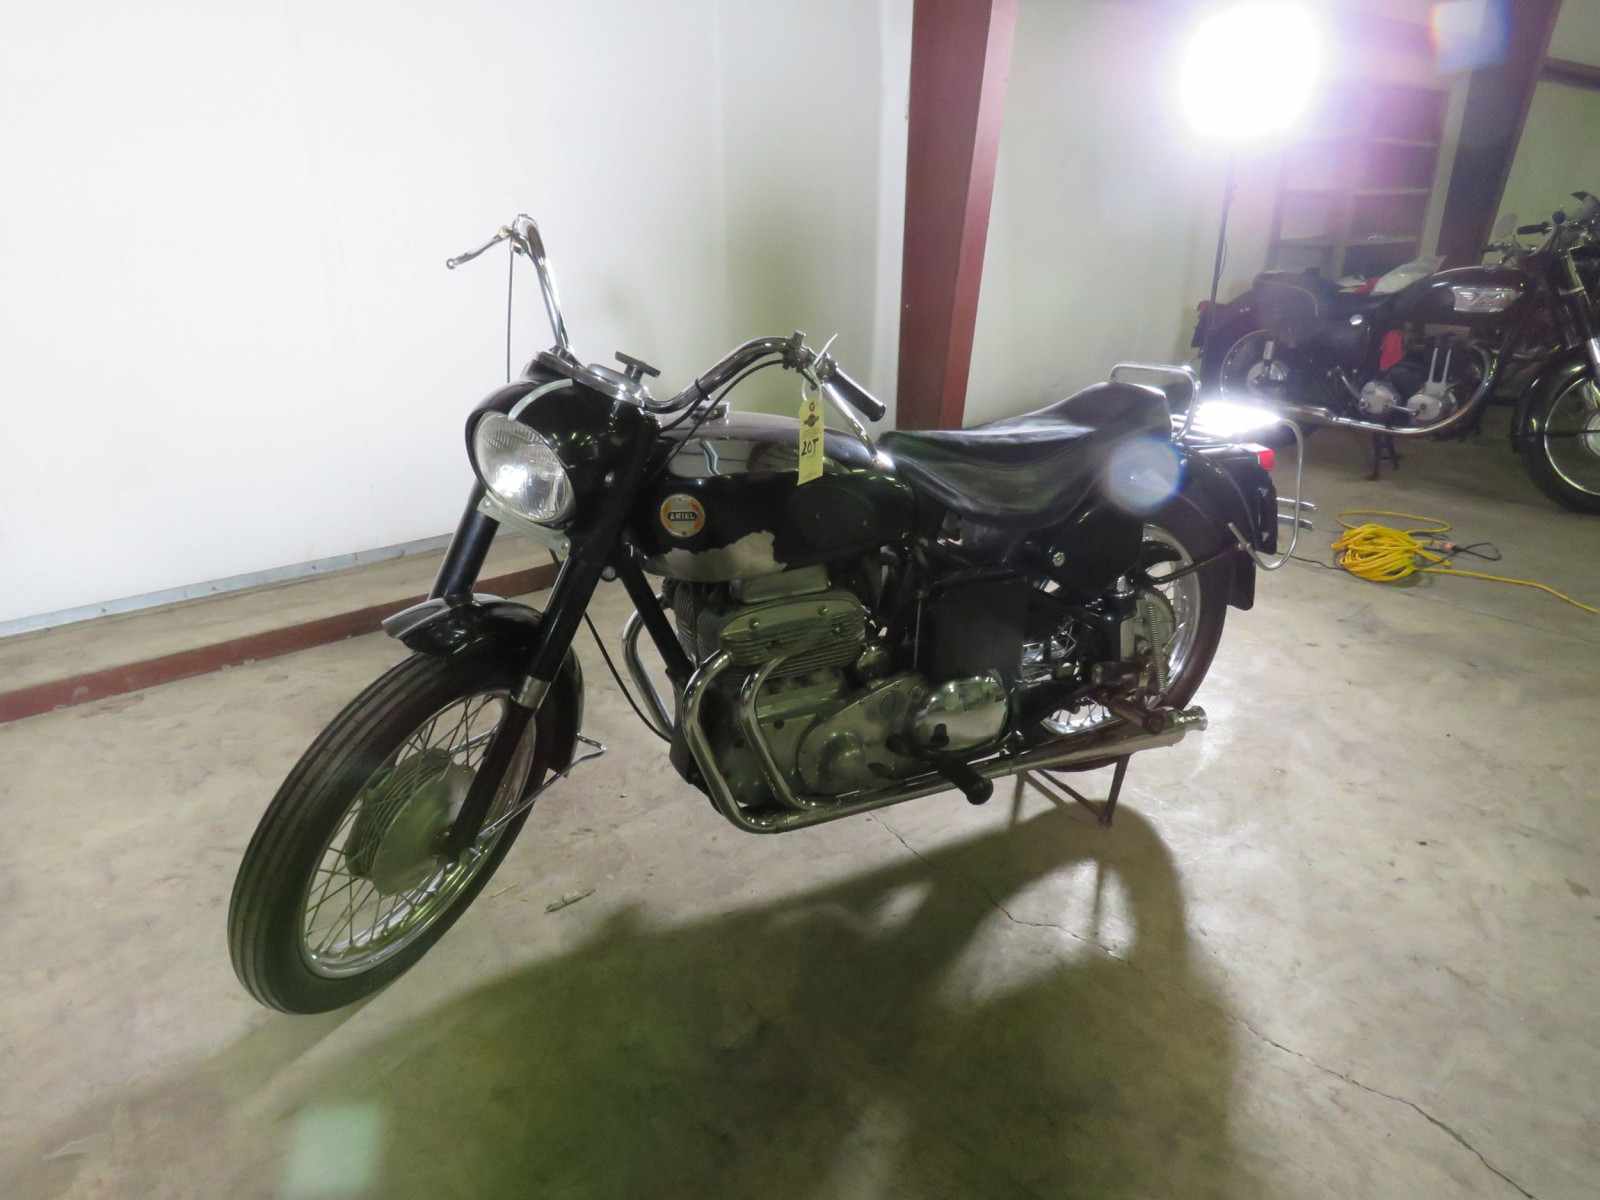 1957 Ariel Square Four Motorcycle - Image 2